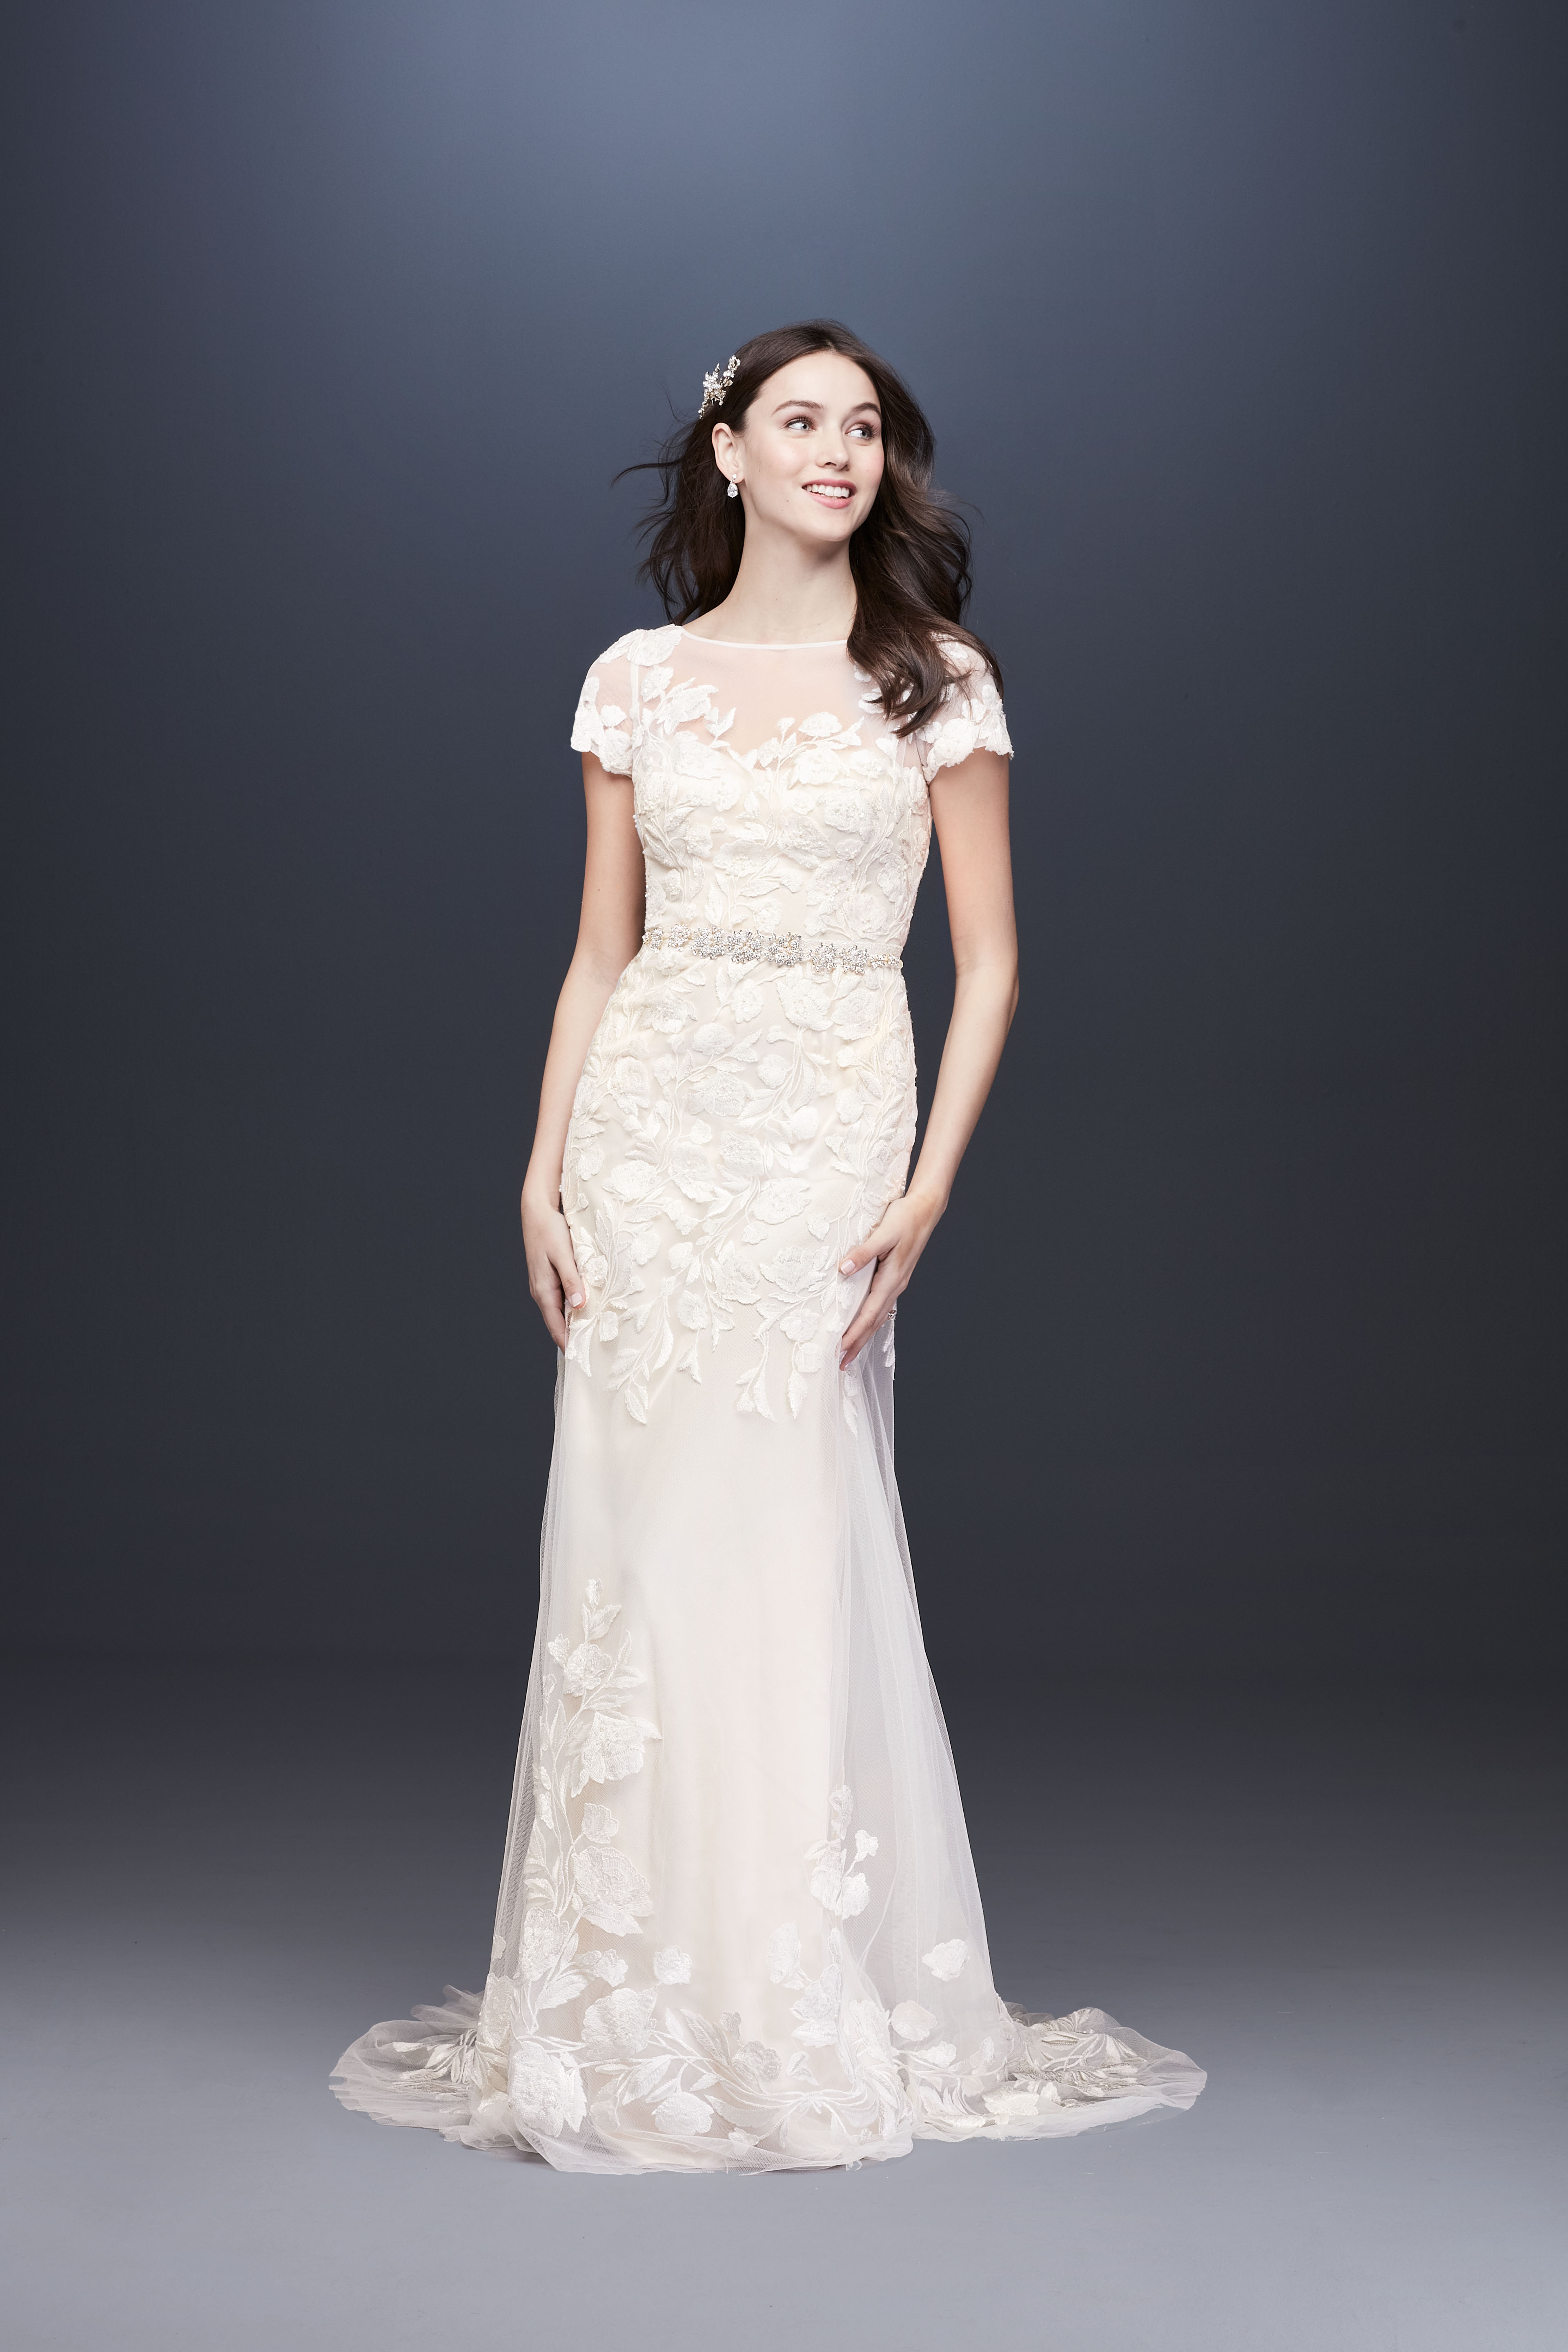 Illusion boat neck short sleeve a-line wedding dress Melissa Sweet Spring 2020